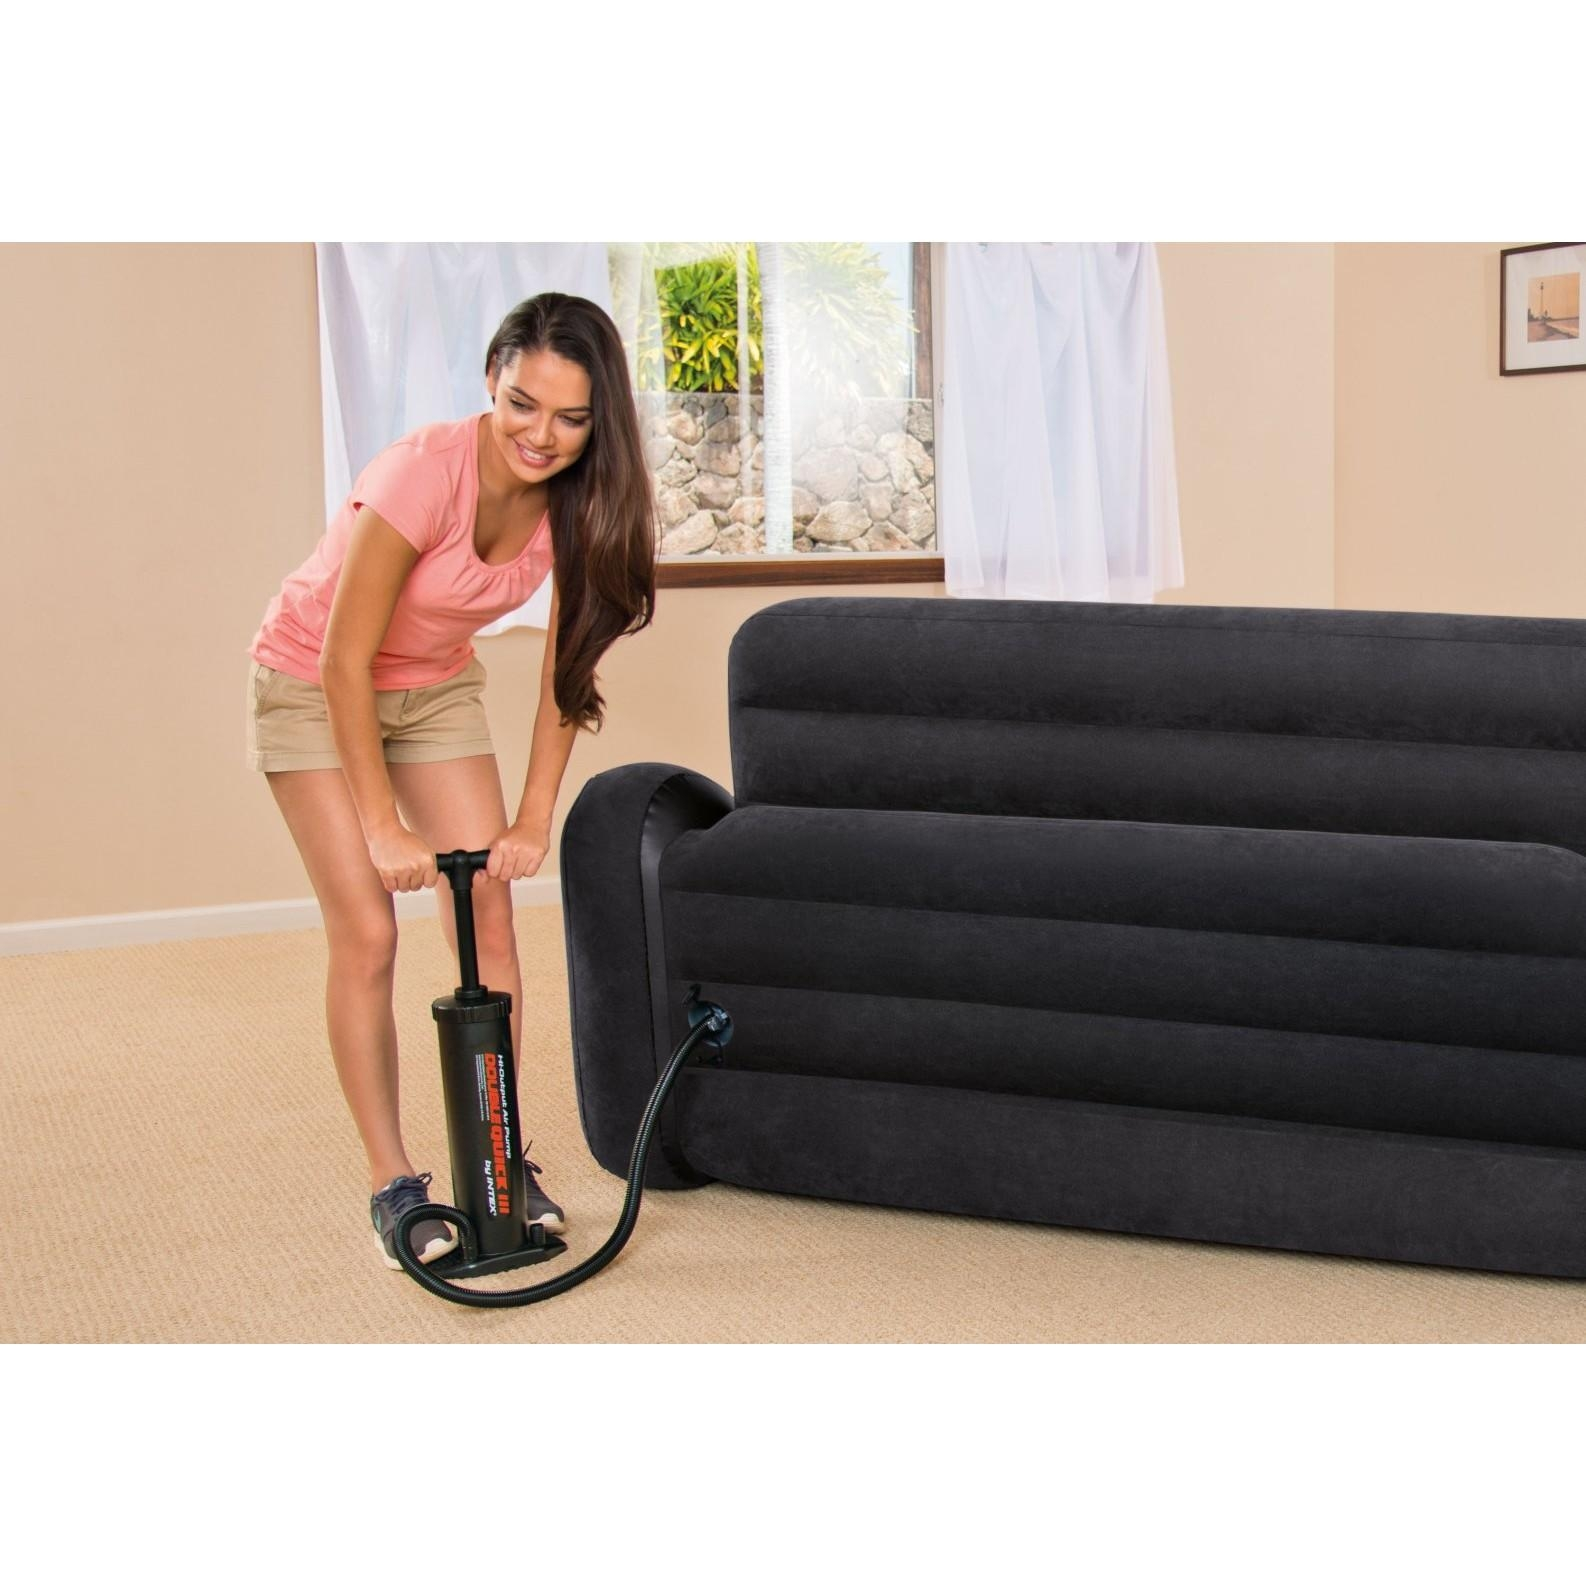 Intex Pull-Out Sofa Inflatable Bed, Queen with regard to Intex Inflatable Pull Out Sofas